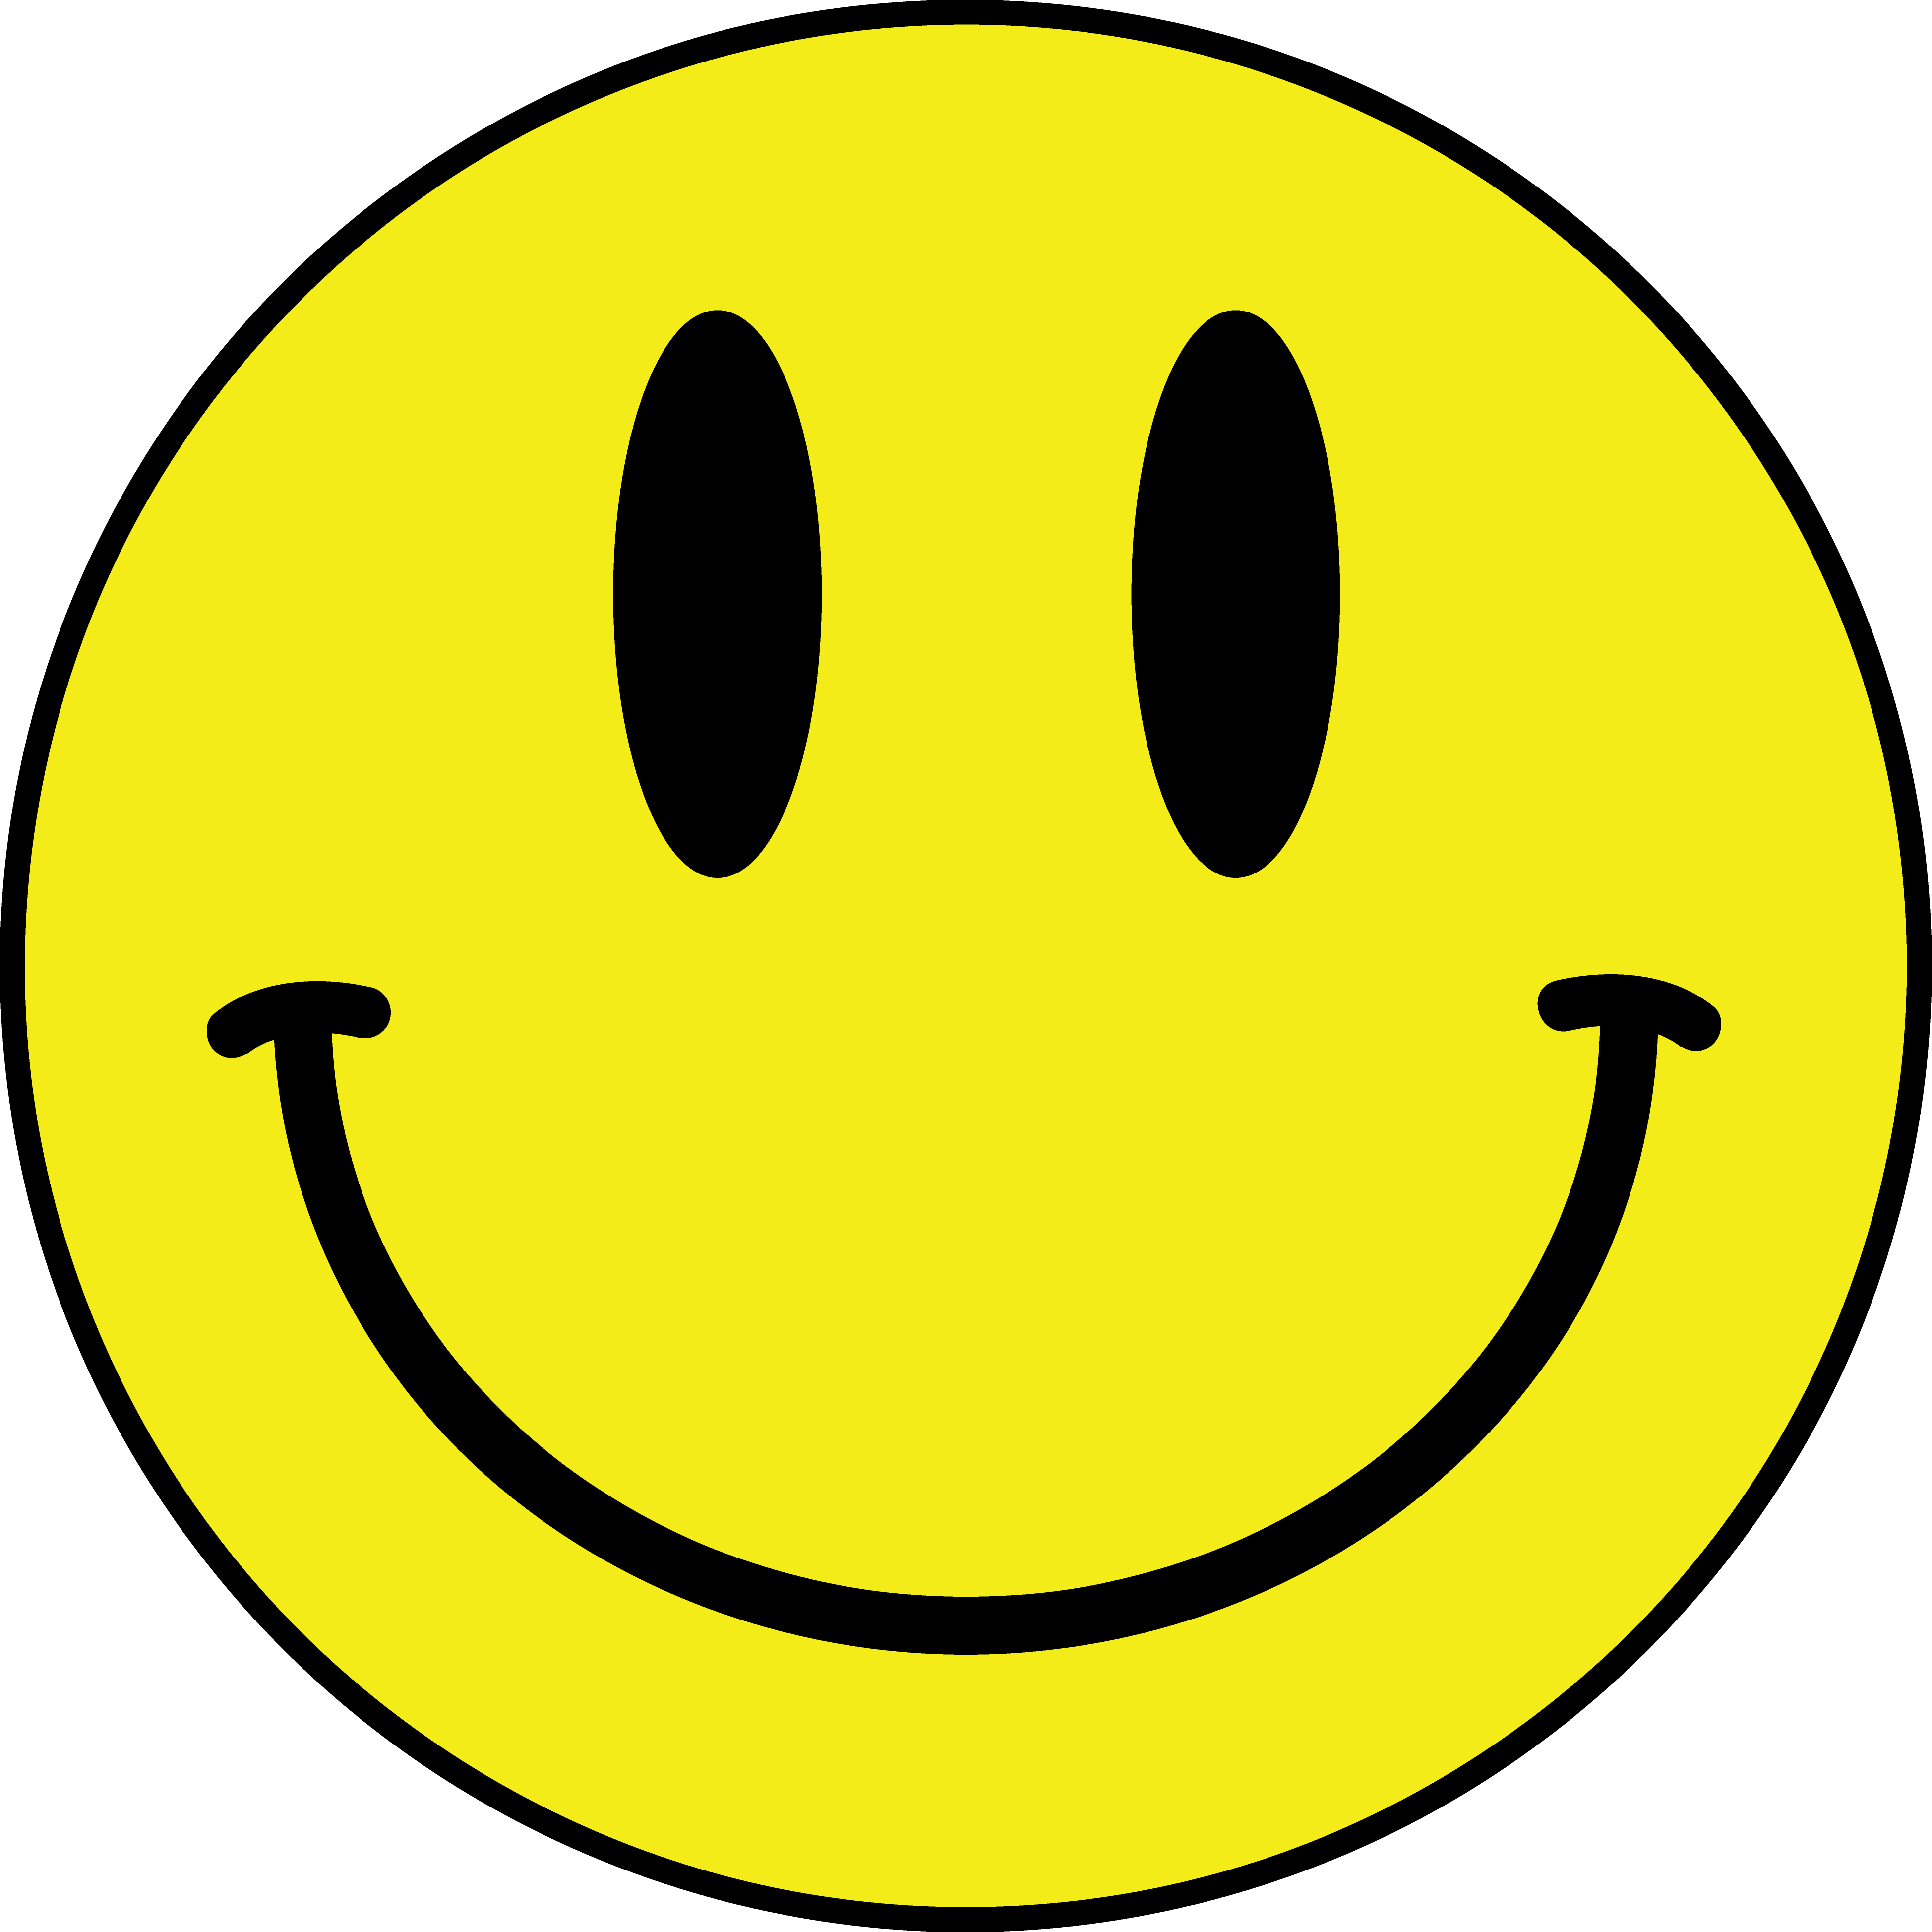 smiley looking happy png image purepng #9904